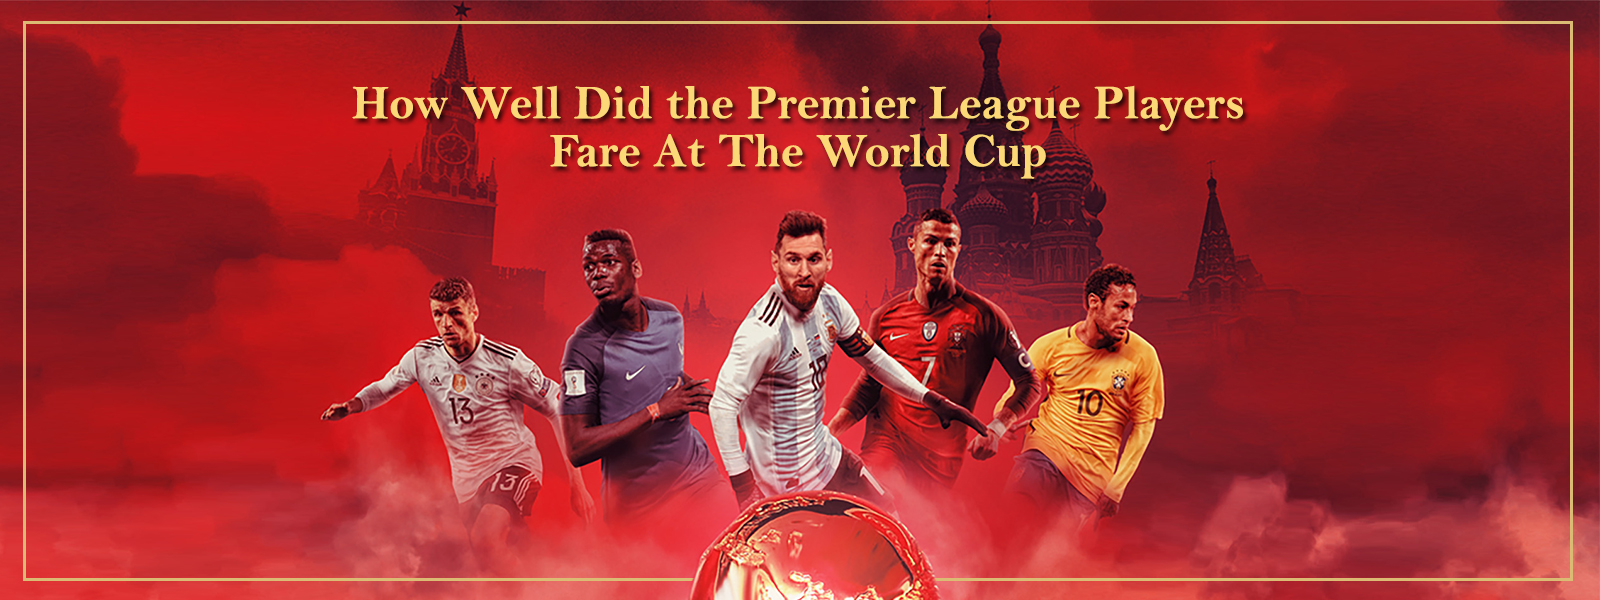 How Well Did the Premier League Players Fare At The World Cup